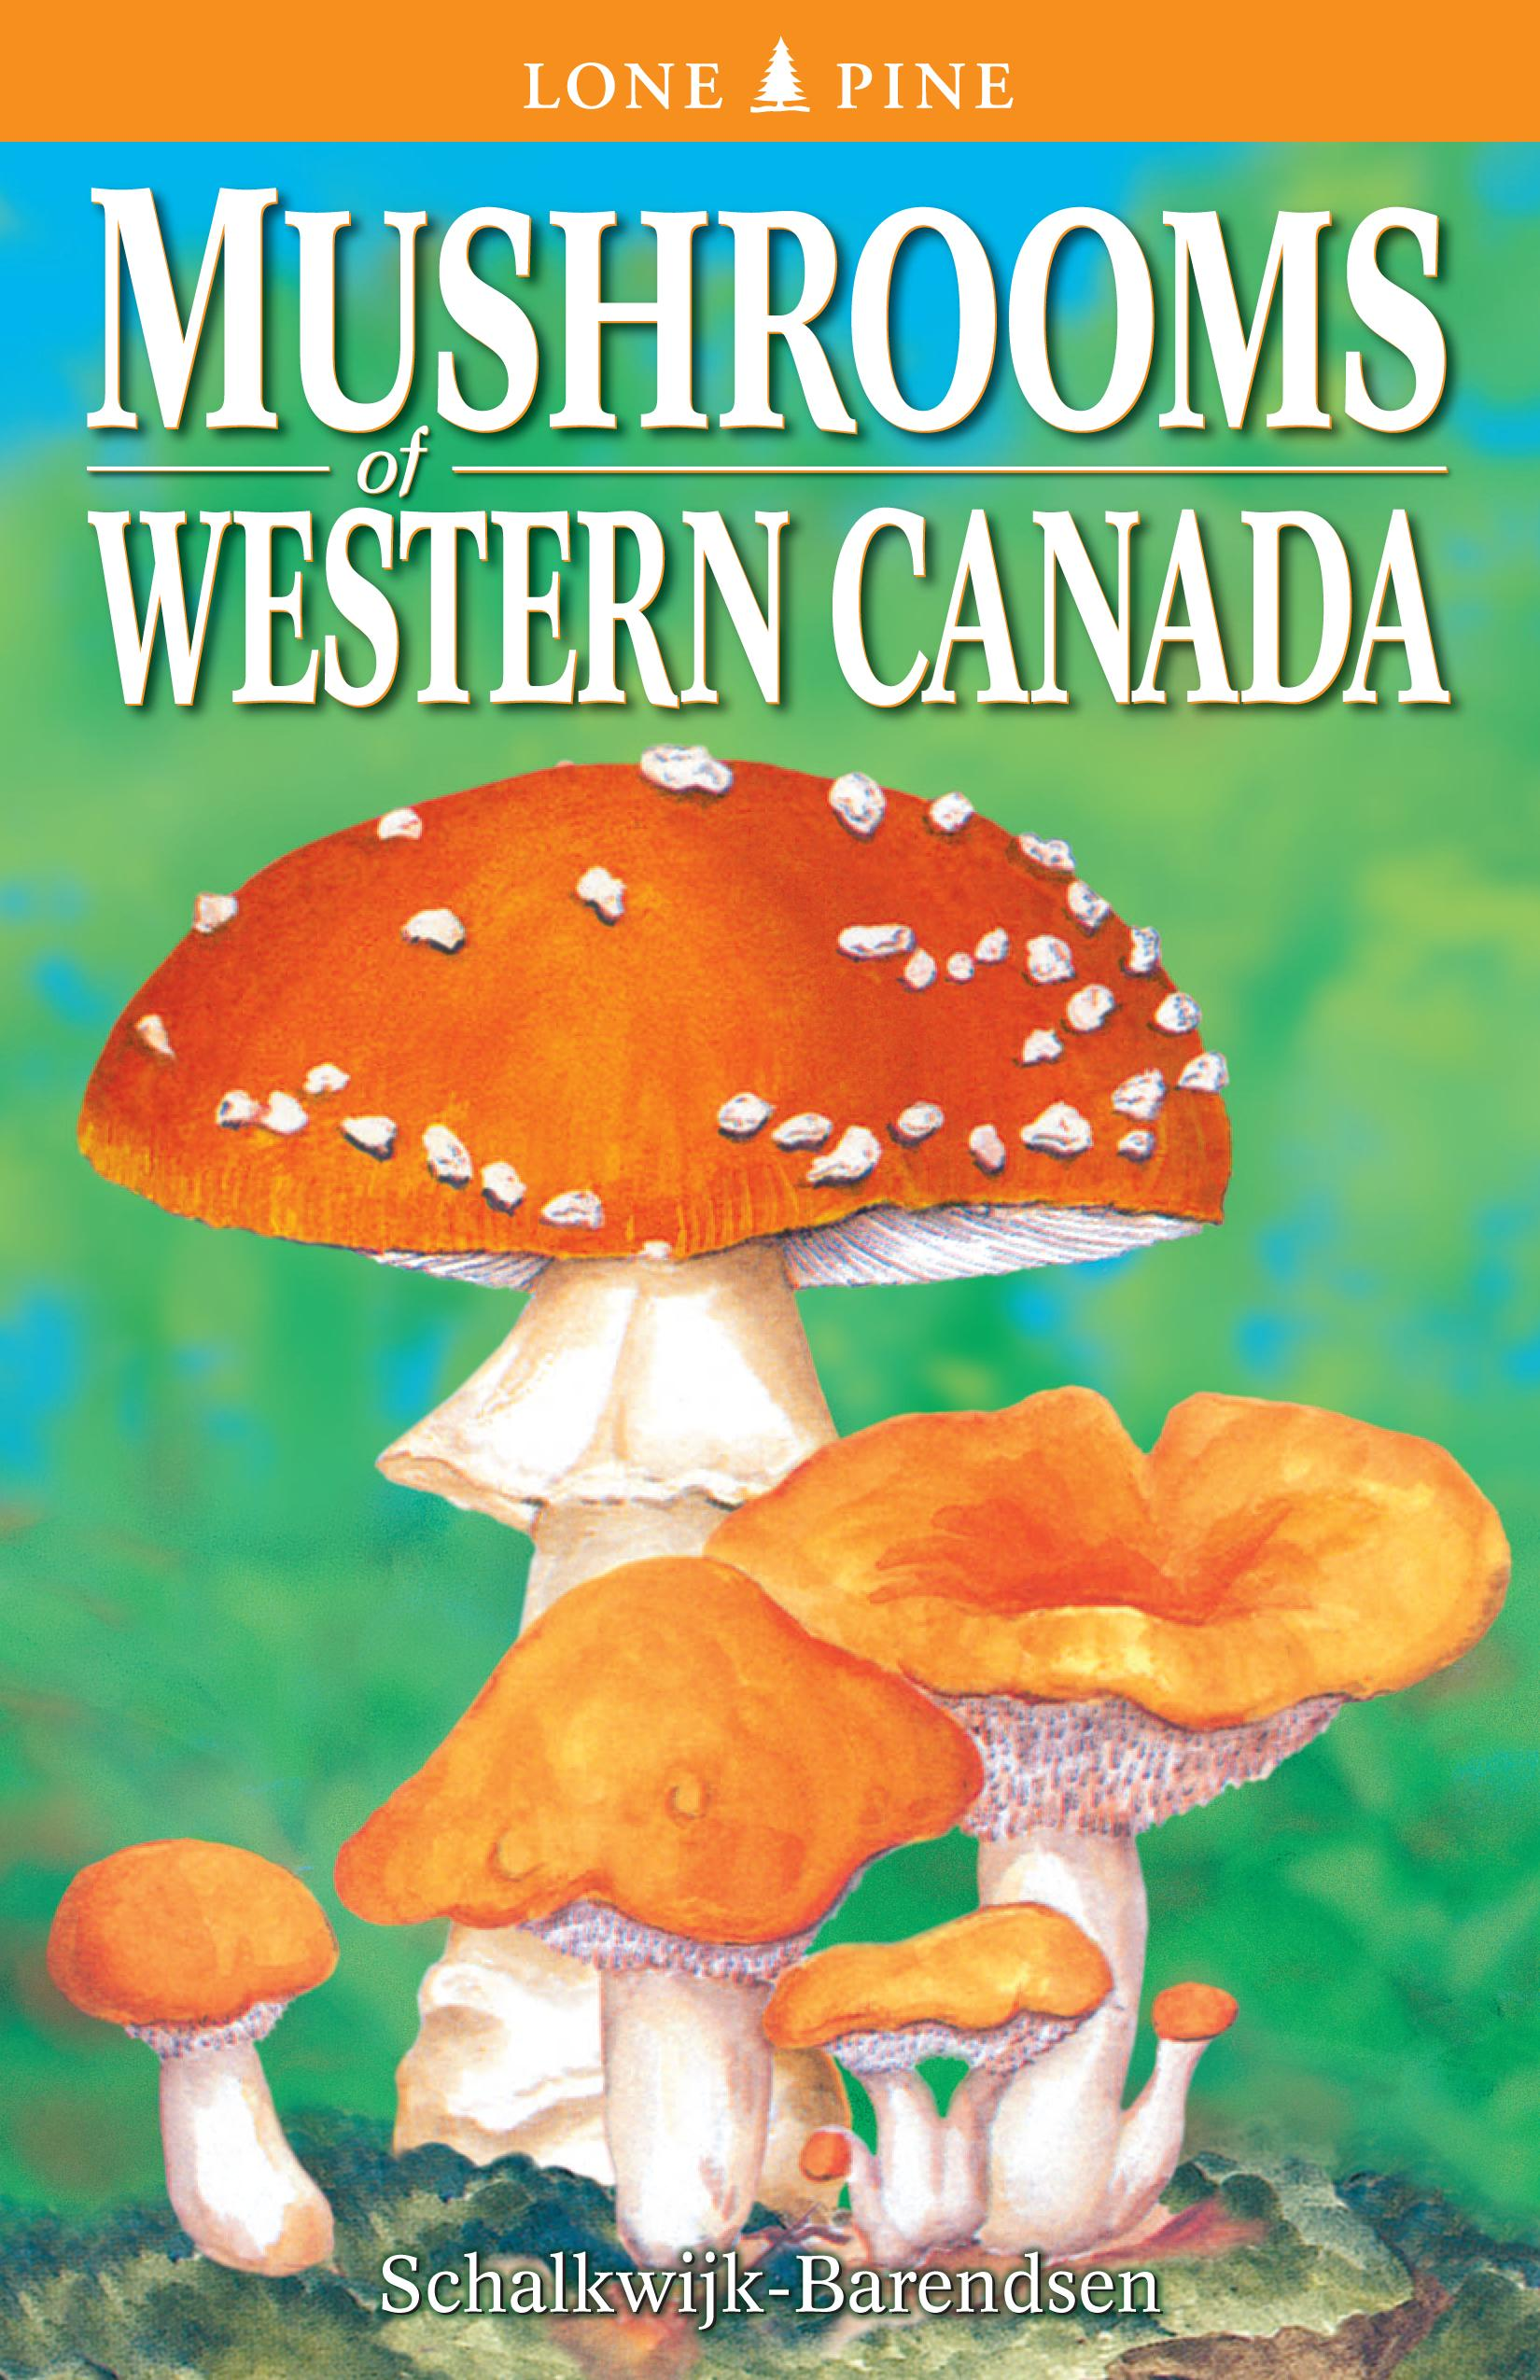 Mushrooms of Western Canada